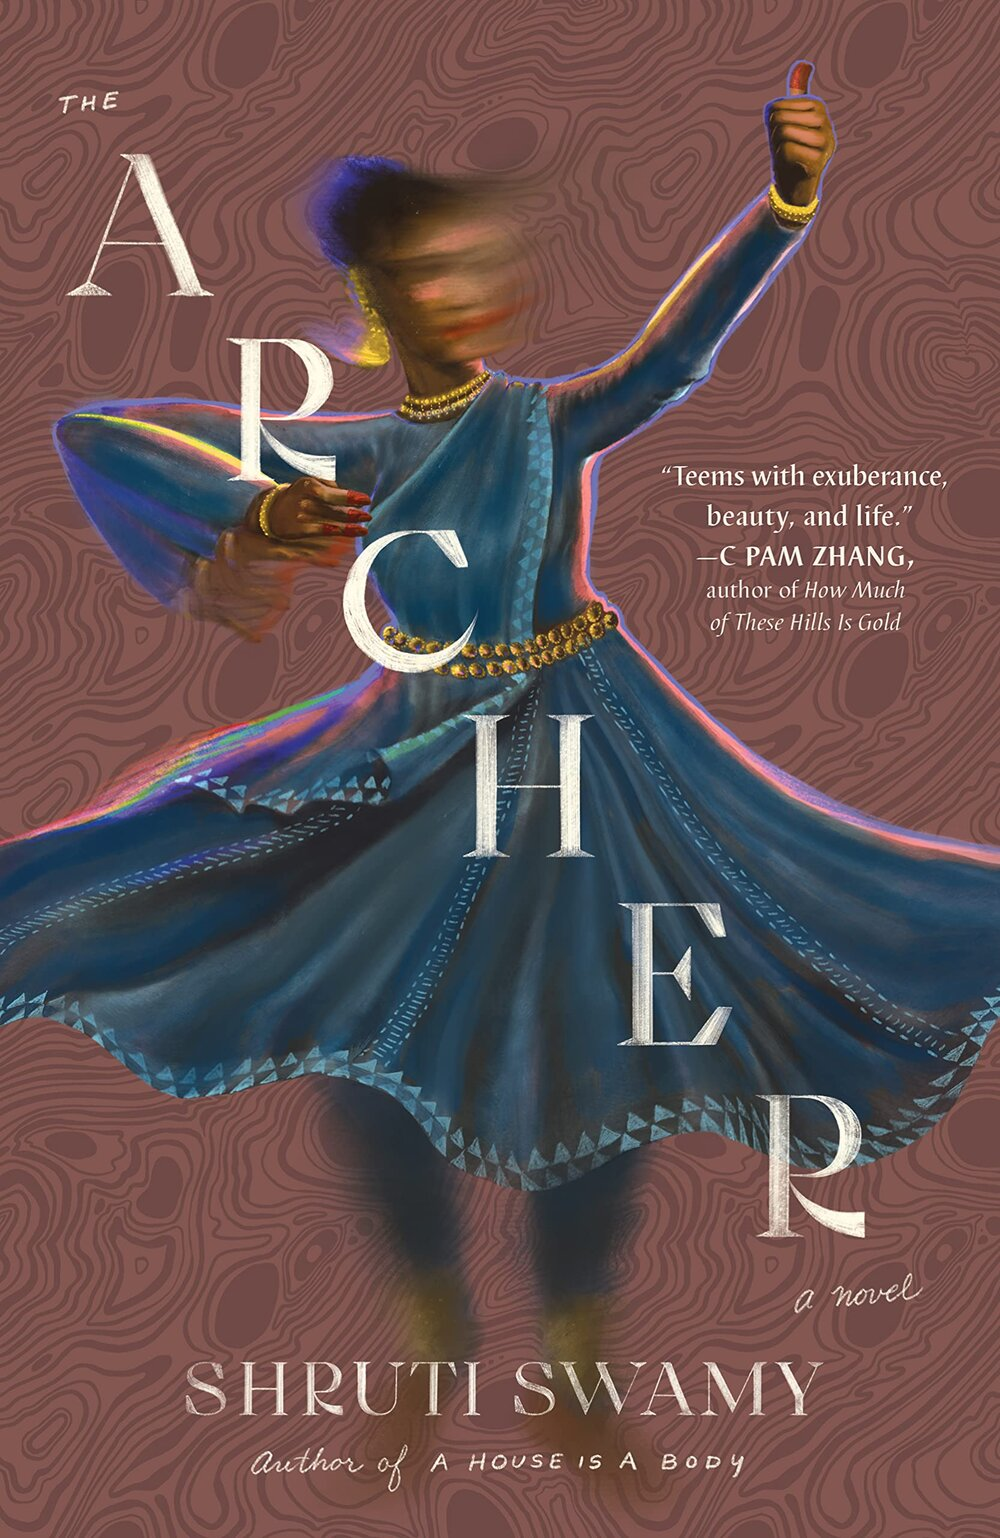 """Book Cover Image of """"The Archer"""""""